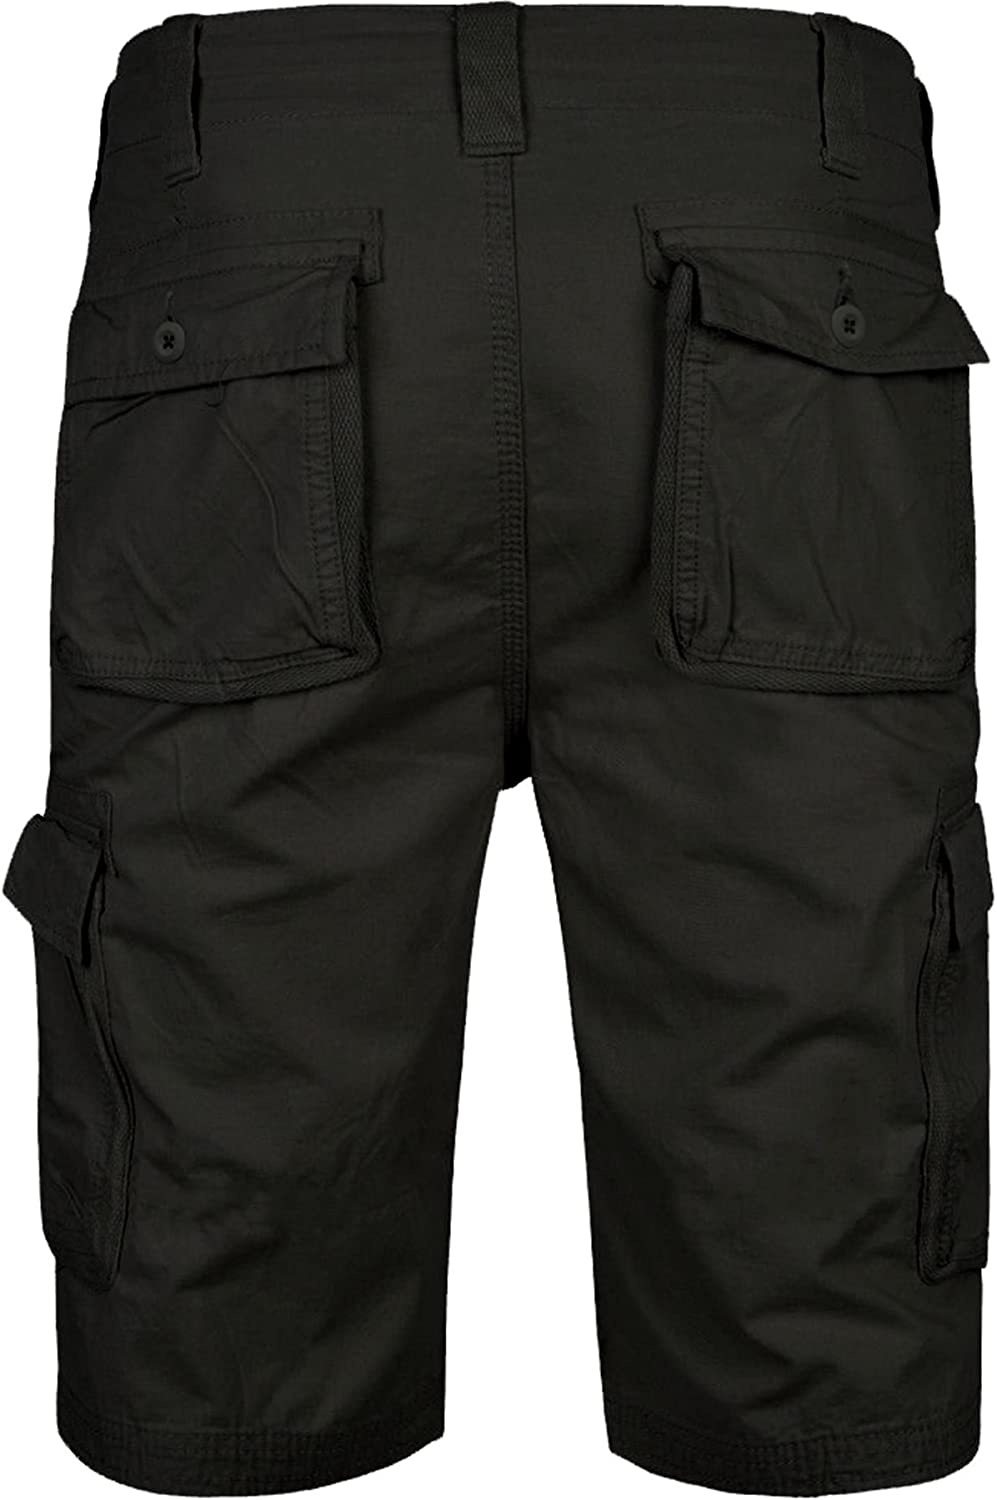 WestAce Mens Camo Shorts Cargo Combat Army Half Pant Work Wear Camouflage 100% Cotton Chino Shorts Black - Afs Chino